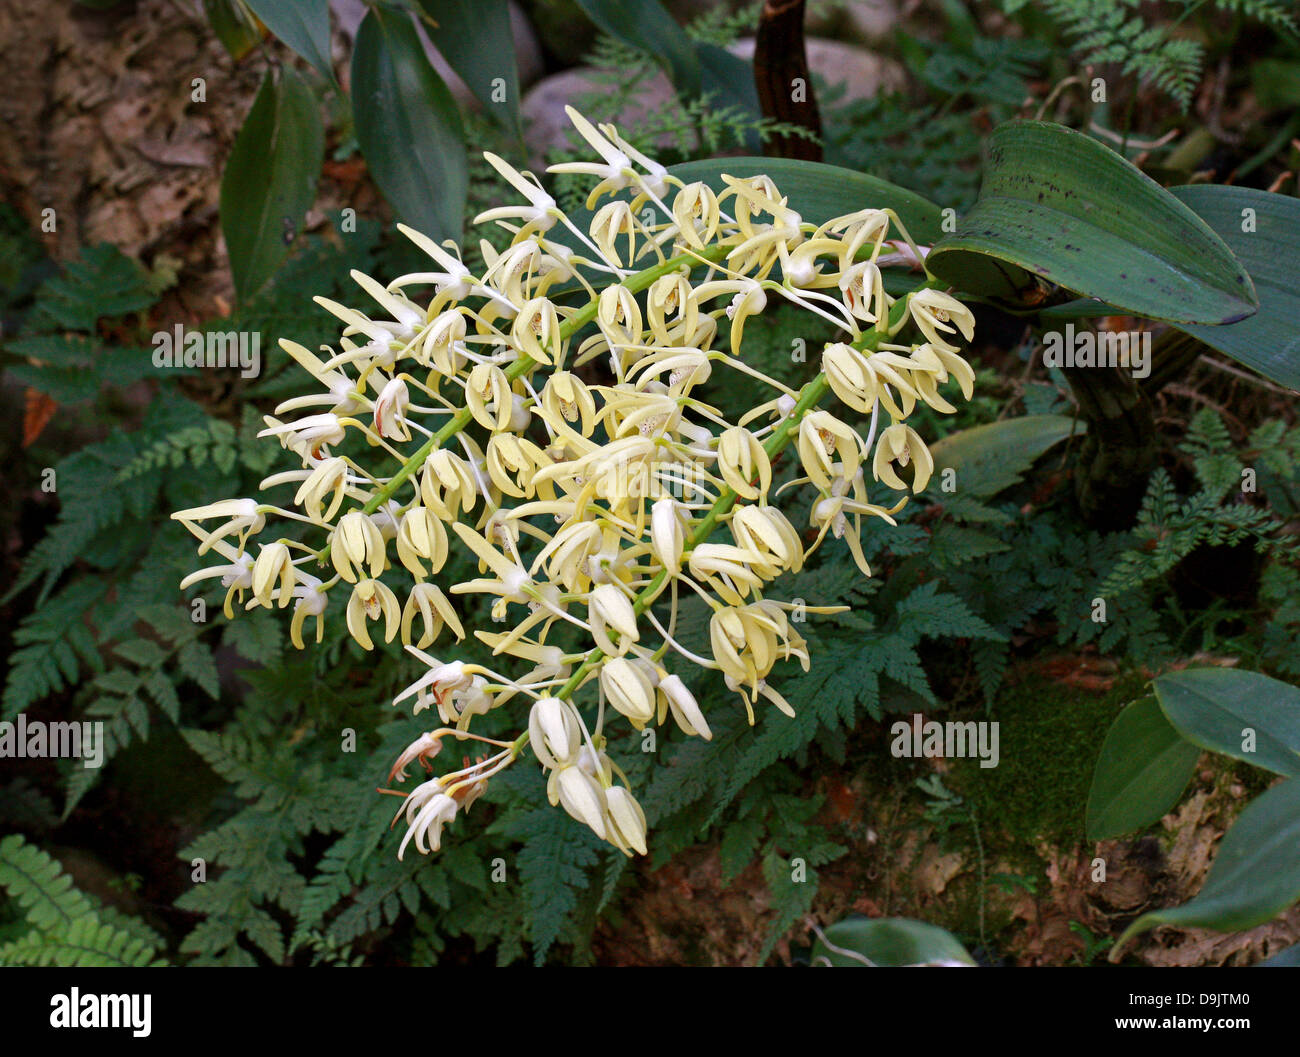 Outstanding Dendrobium, King Orchid, or Rock Lily, Dendrobium speciosum, Orchidaceae. Australia. - Stock Image